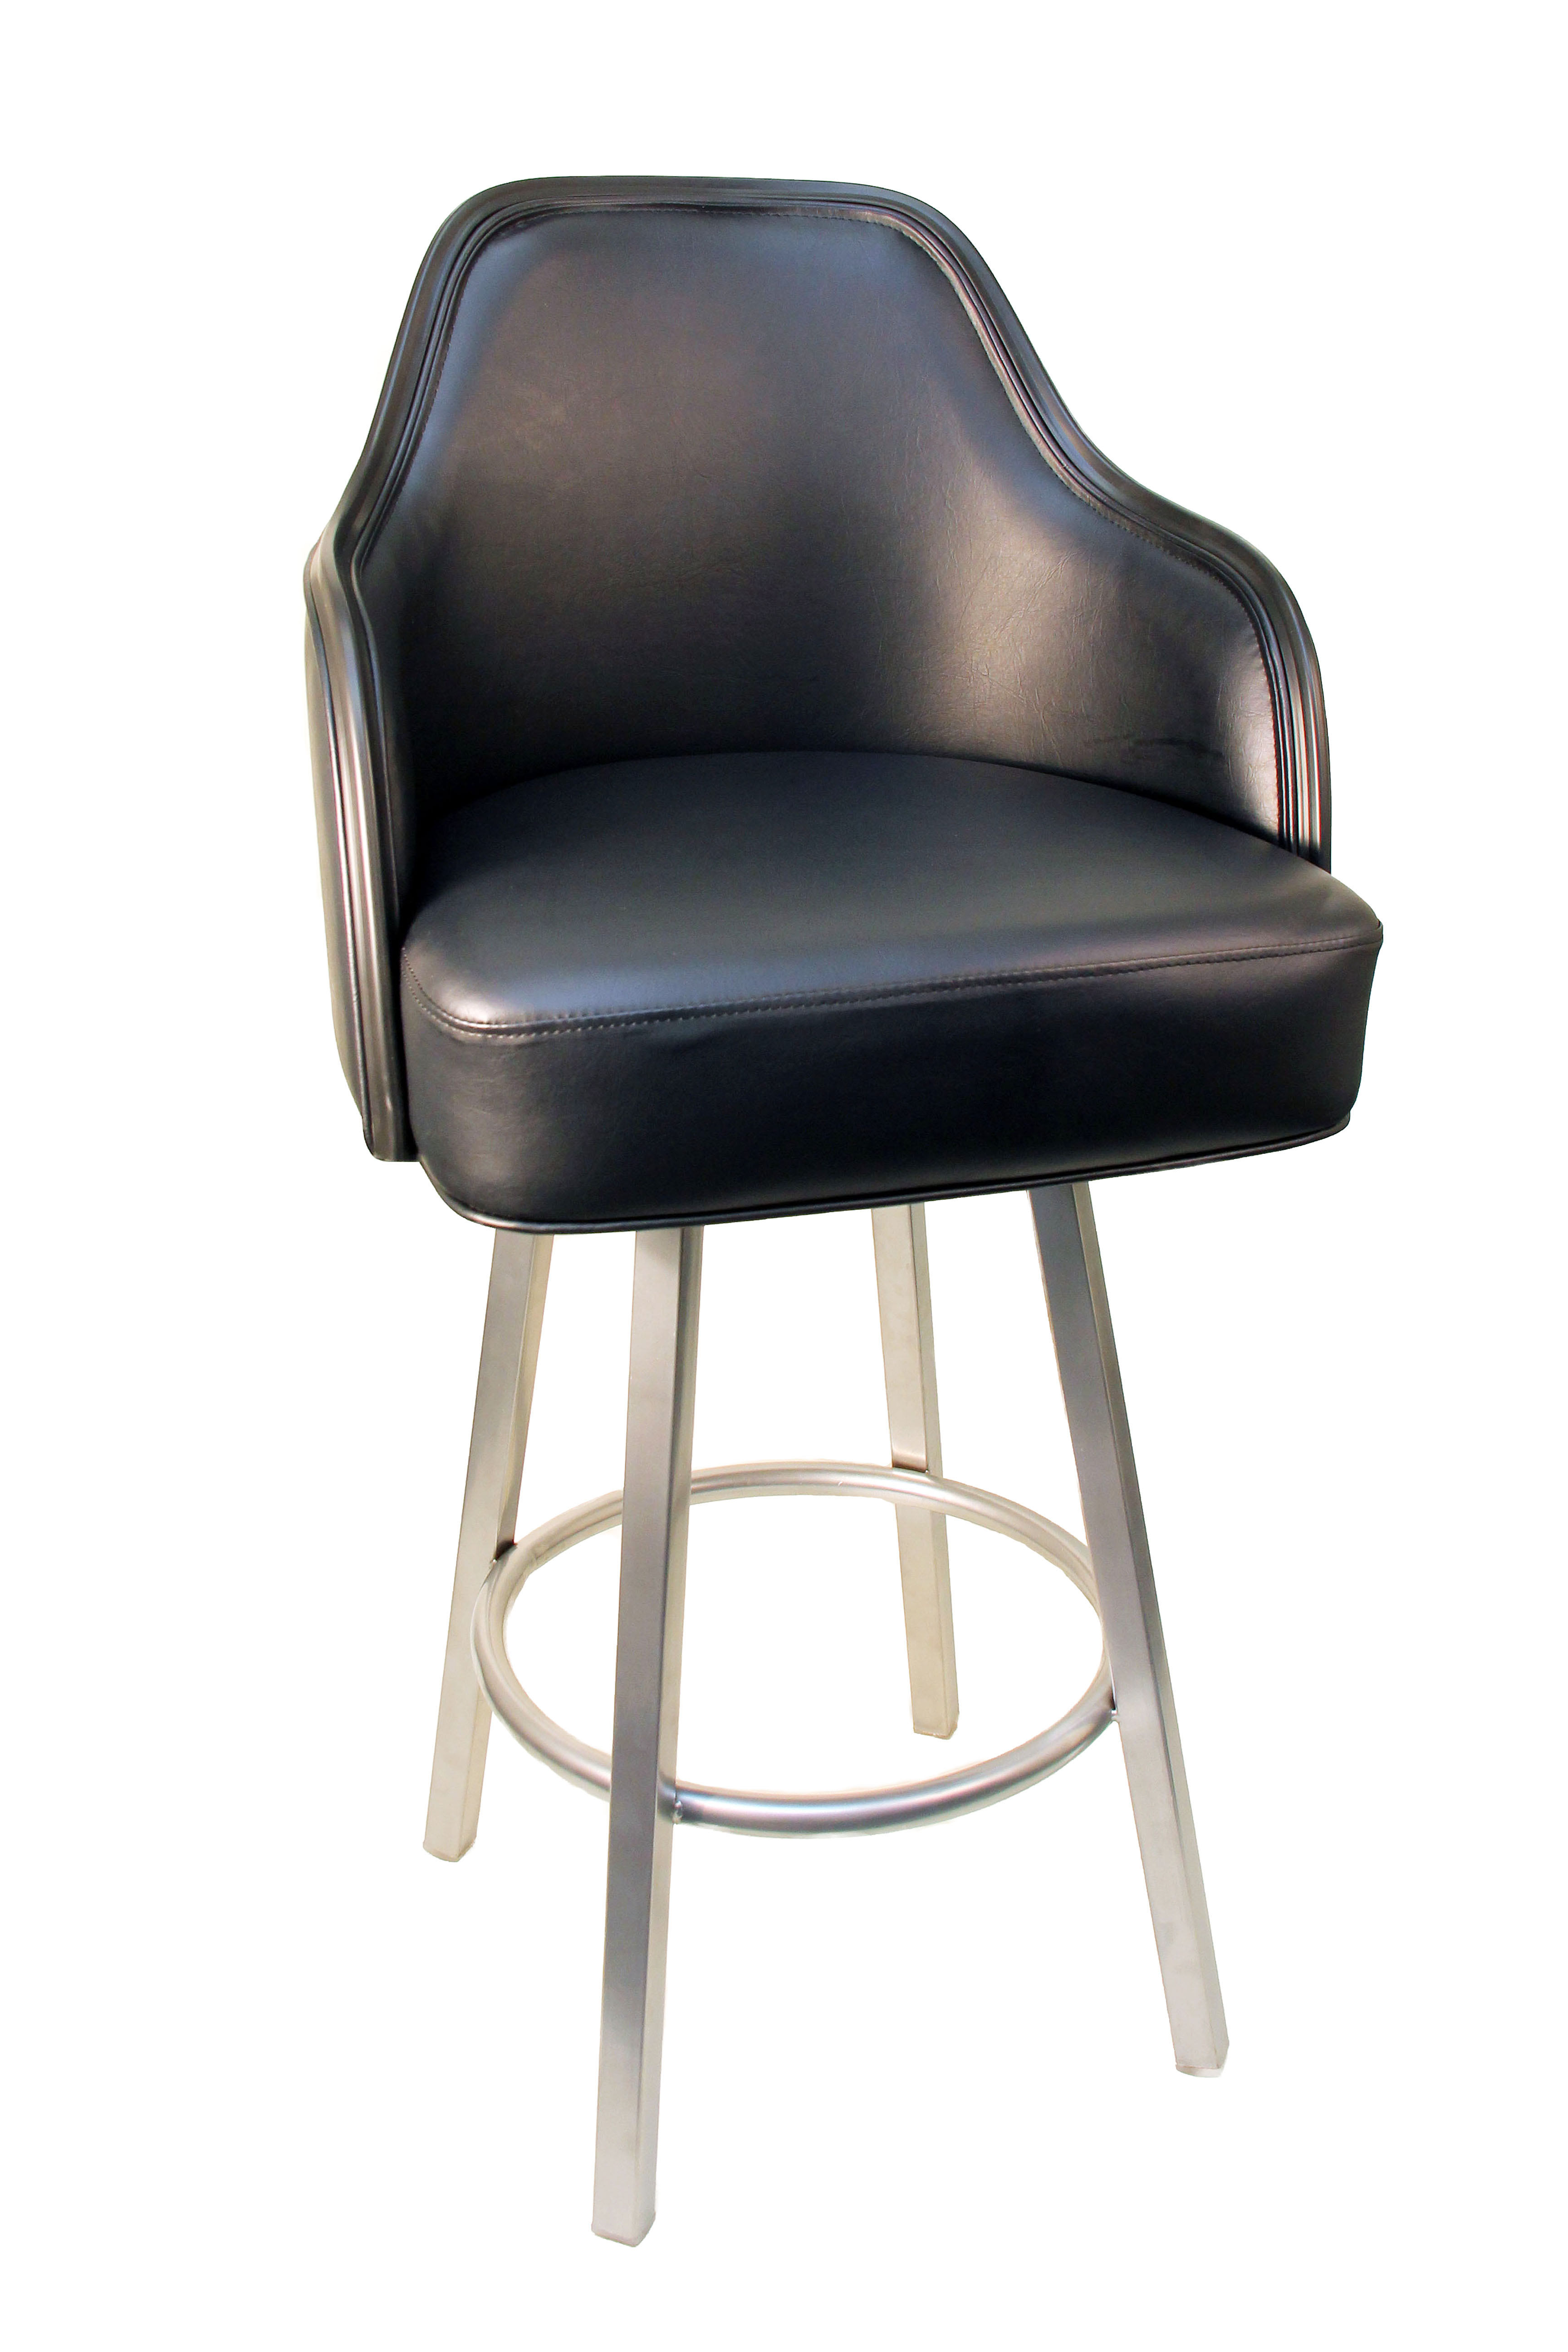 grade stools best commercial bar stools ARKPOEO